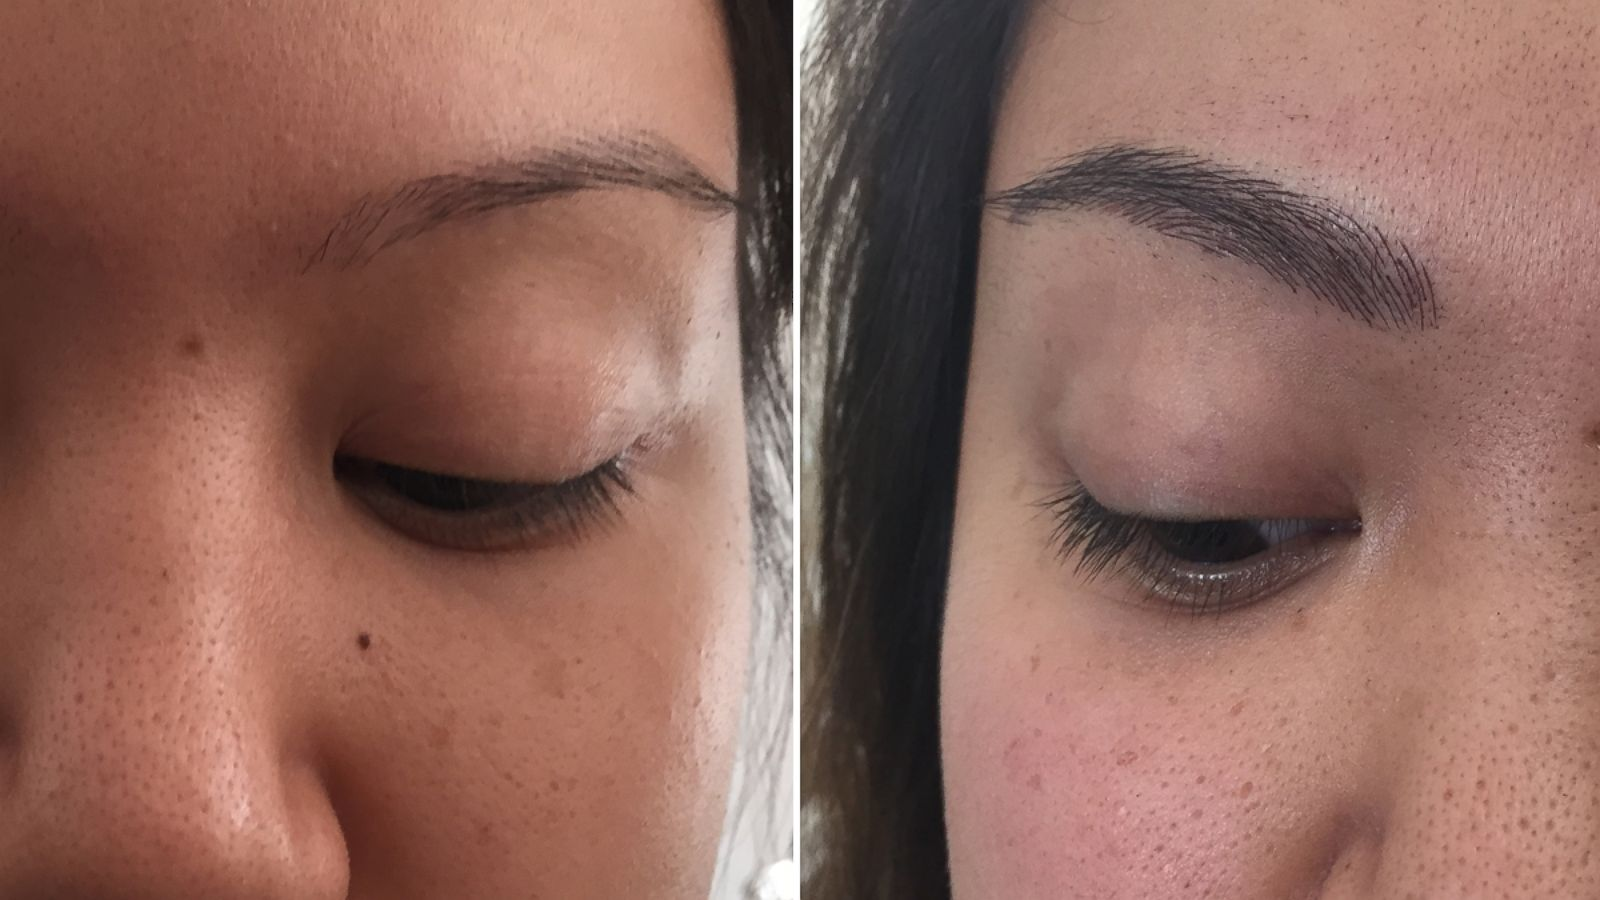 Eyebrow Embroidery Semi Permanent Ink Gives Brows Fuller Look For